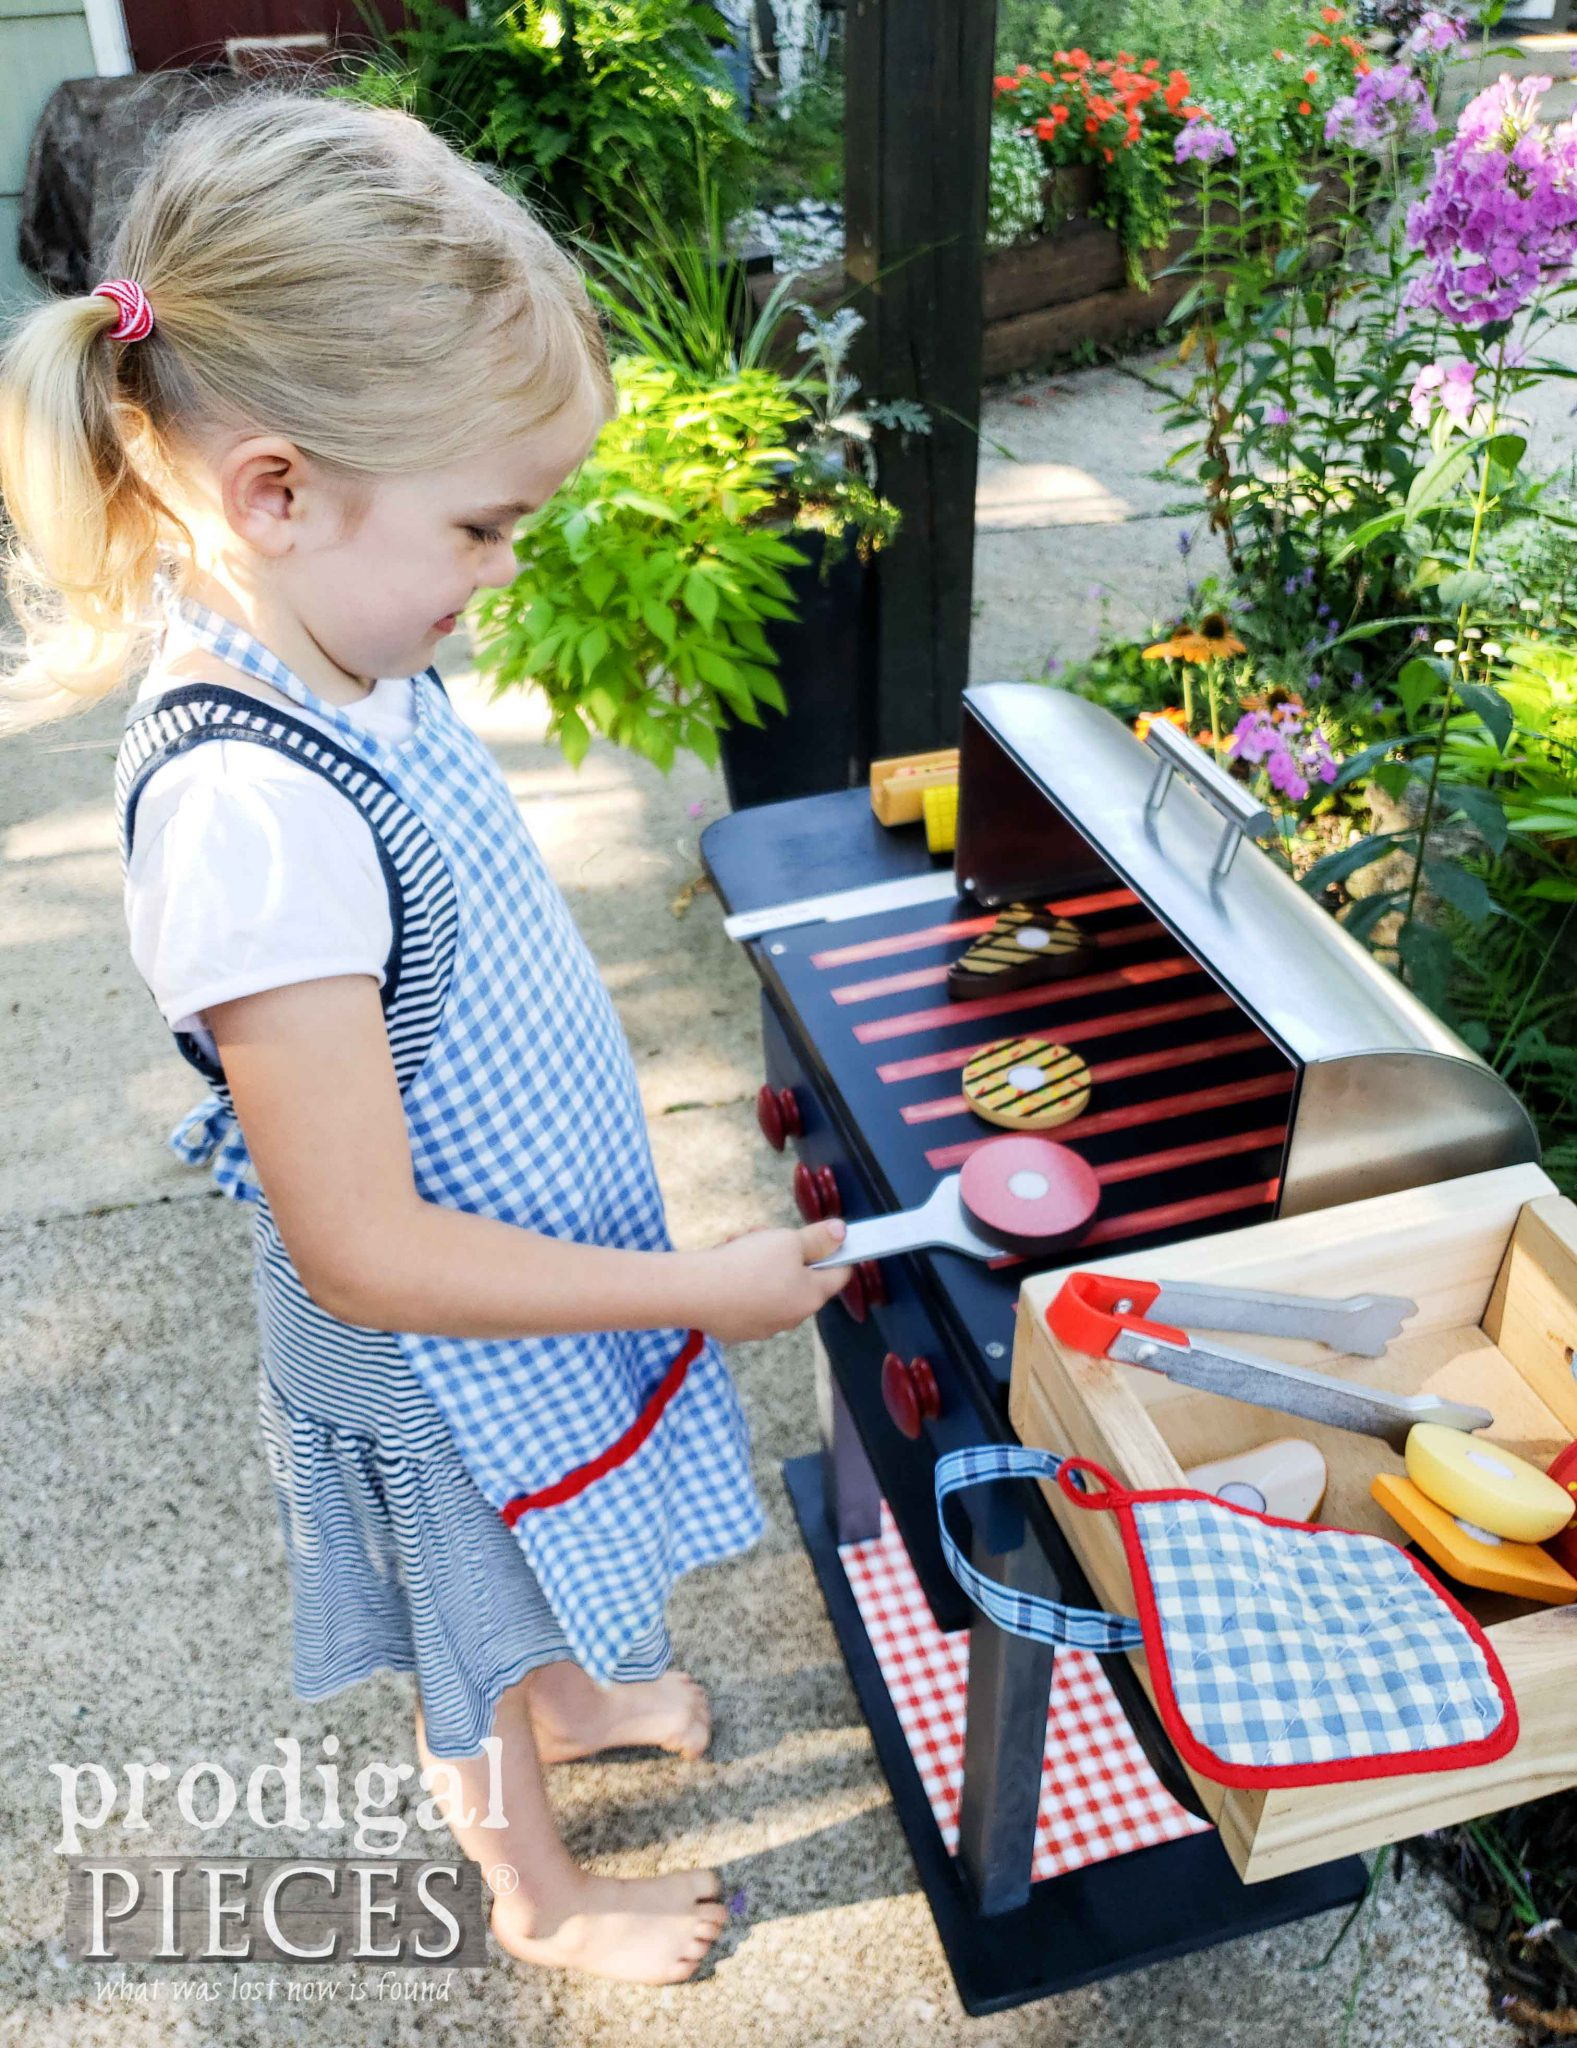 Toddler Girl with Pretend Play Grilling Food Set and Grill made by Prodigal Pieces | prodigalpieces.com #prodigalpieces #diy #home #handmade #homedecor #kids #toys